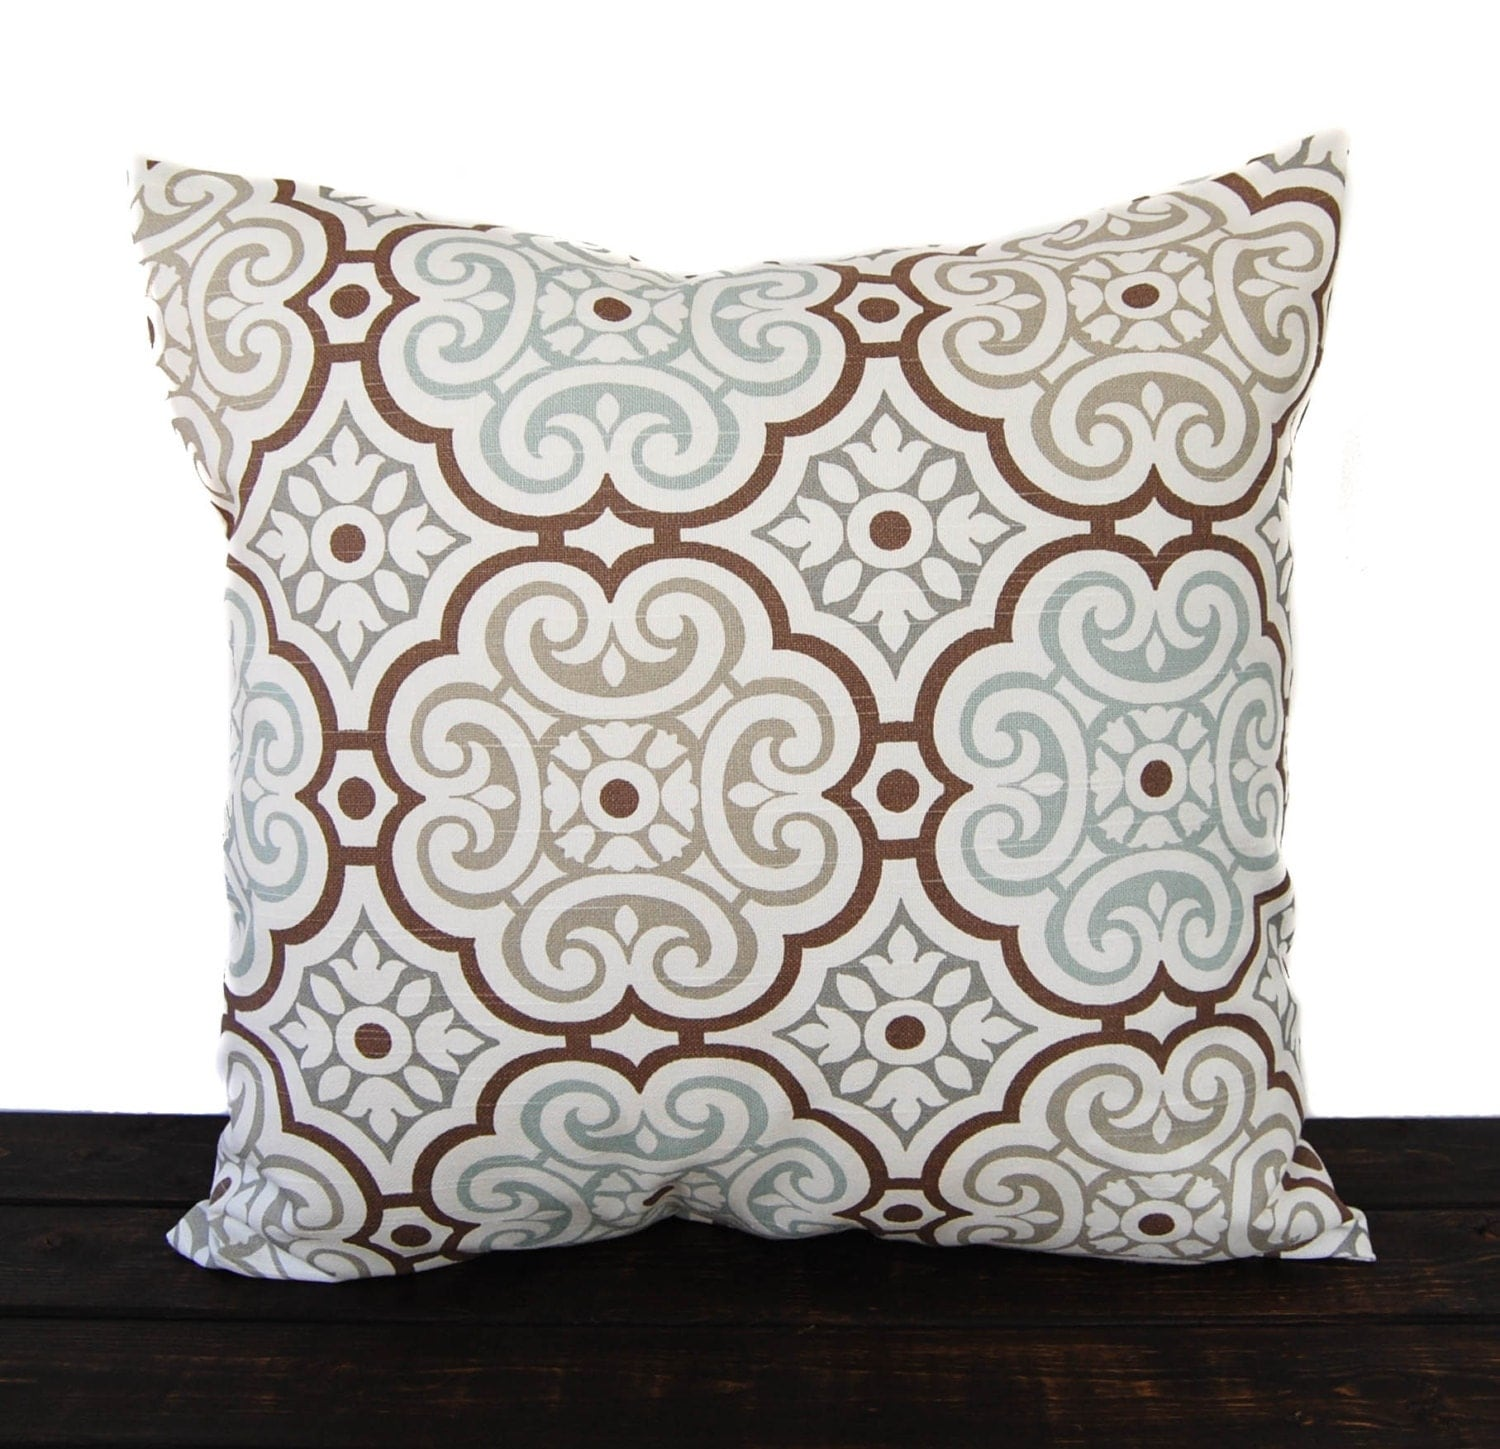 Light Blue And Brown Decorative Pillows : Throw pillow cover cushion cover gray brown light blue brown